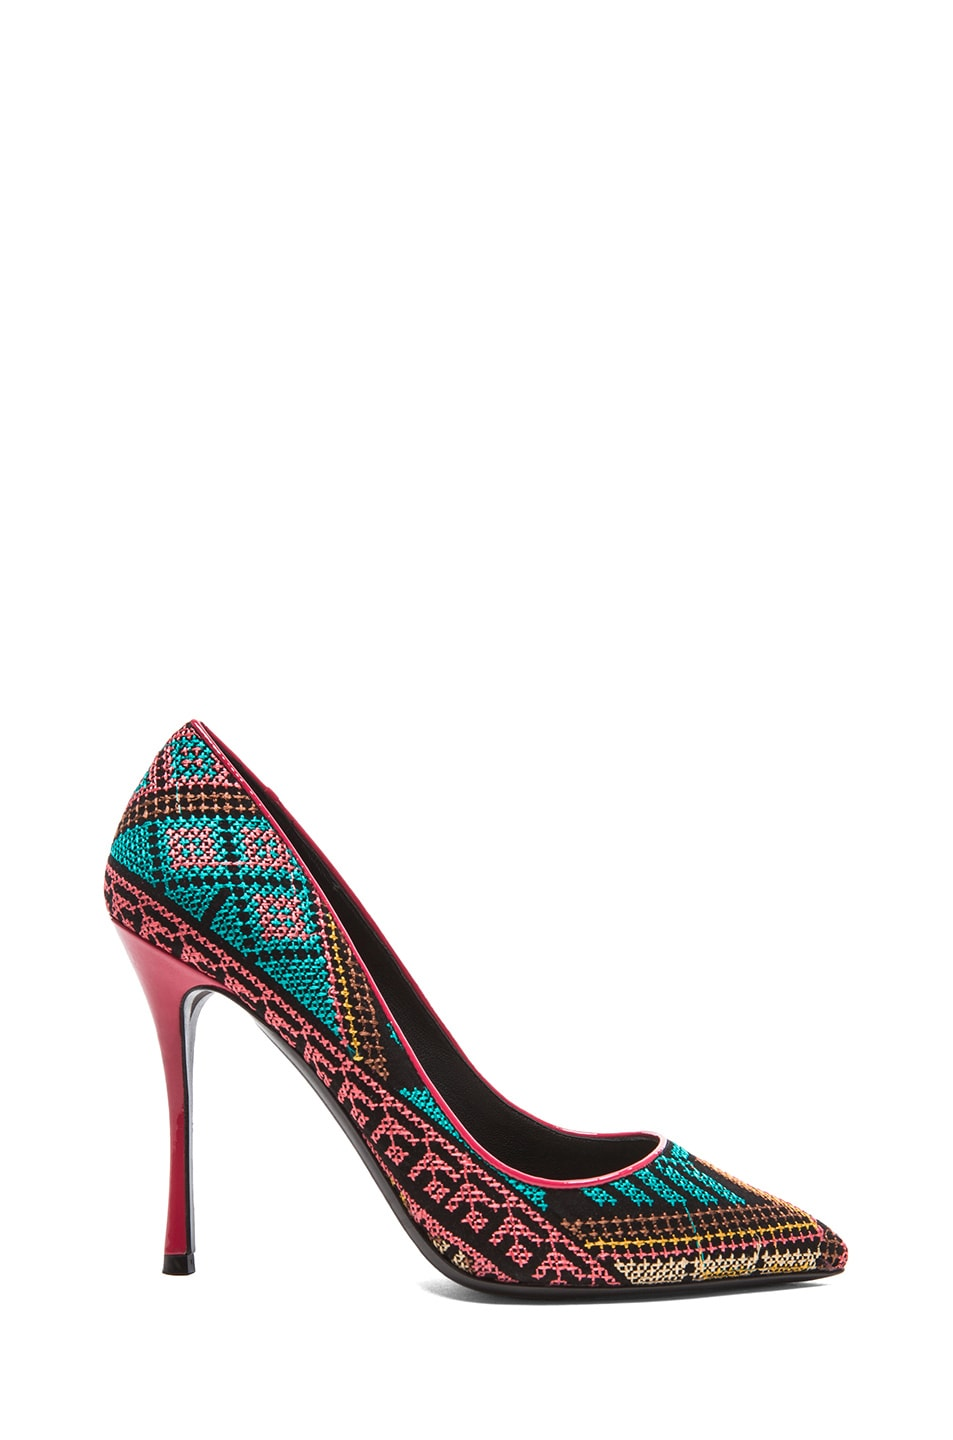 Image 1 of Nicholas Kirkwood Mexican Embroidered Heels in Aqua & Coral